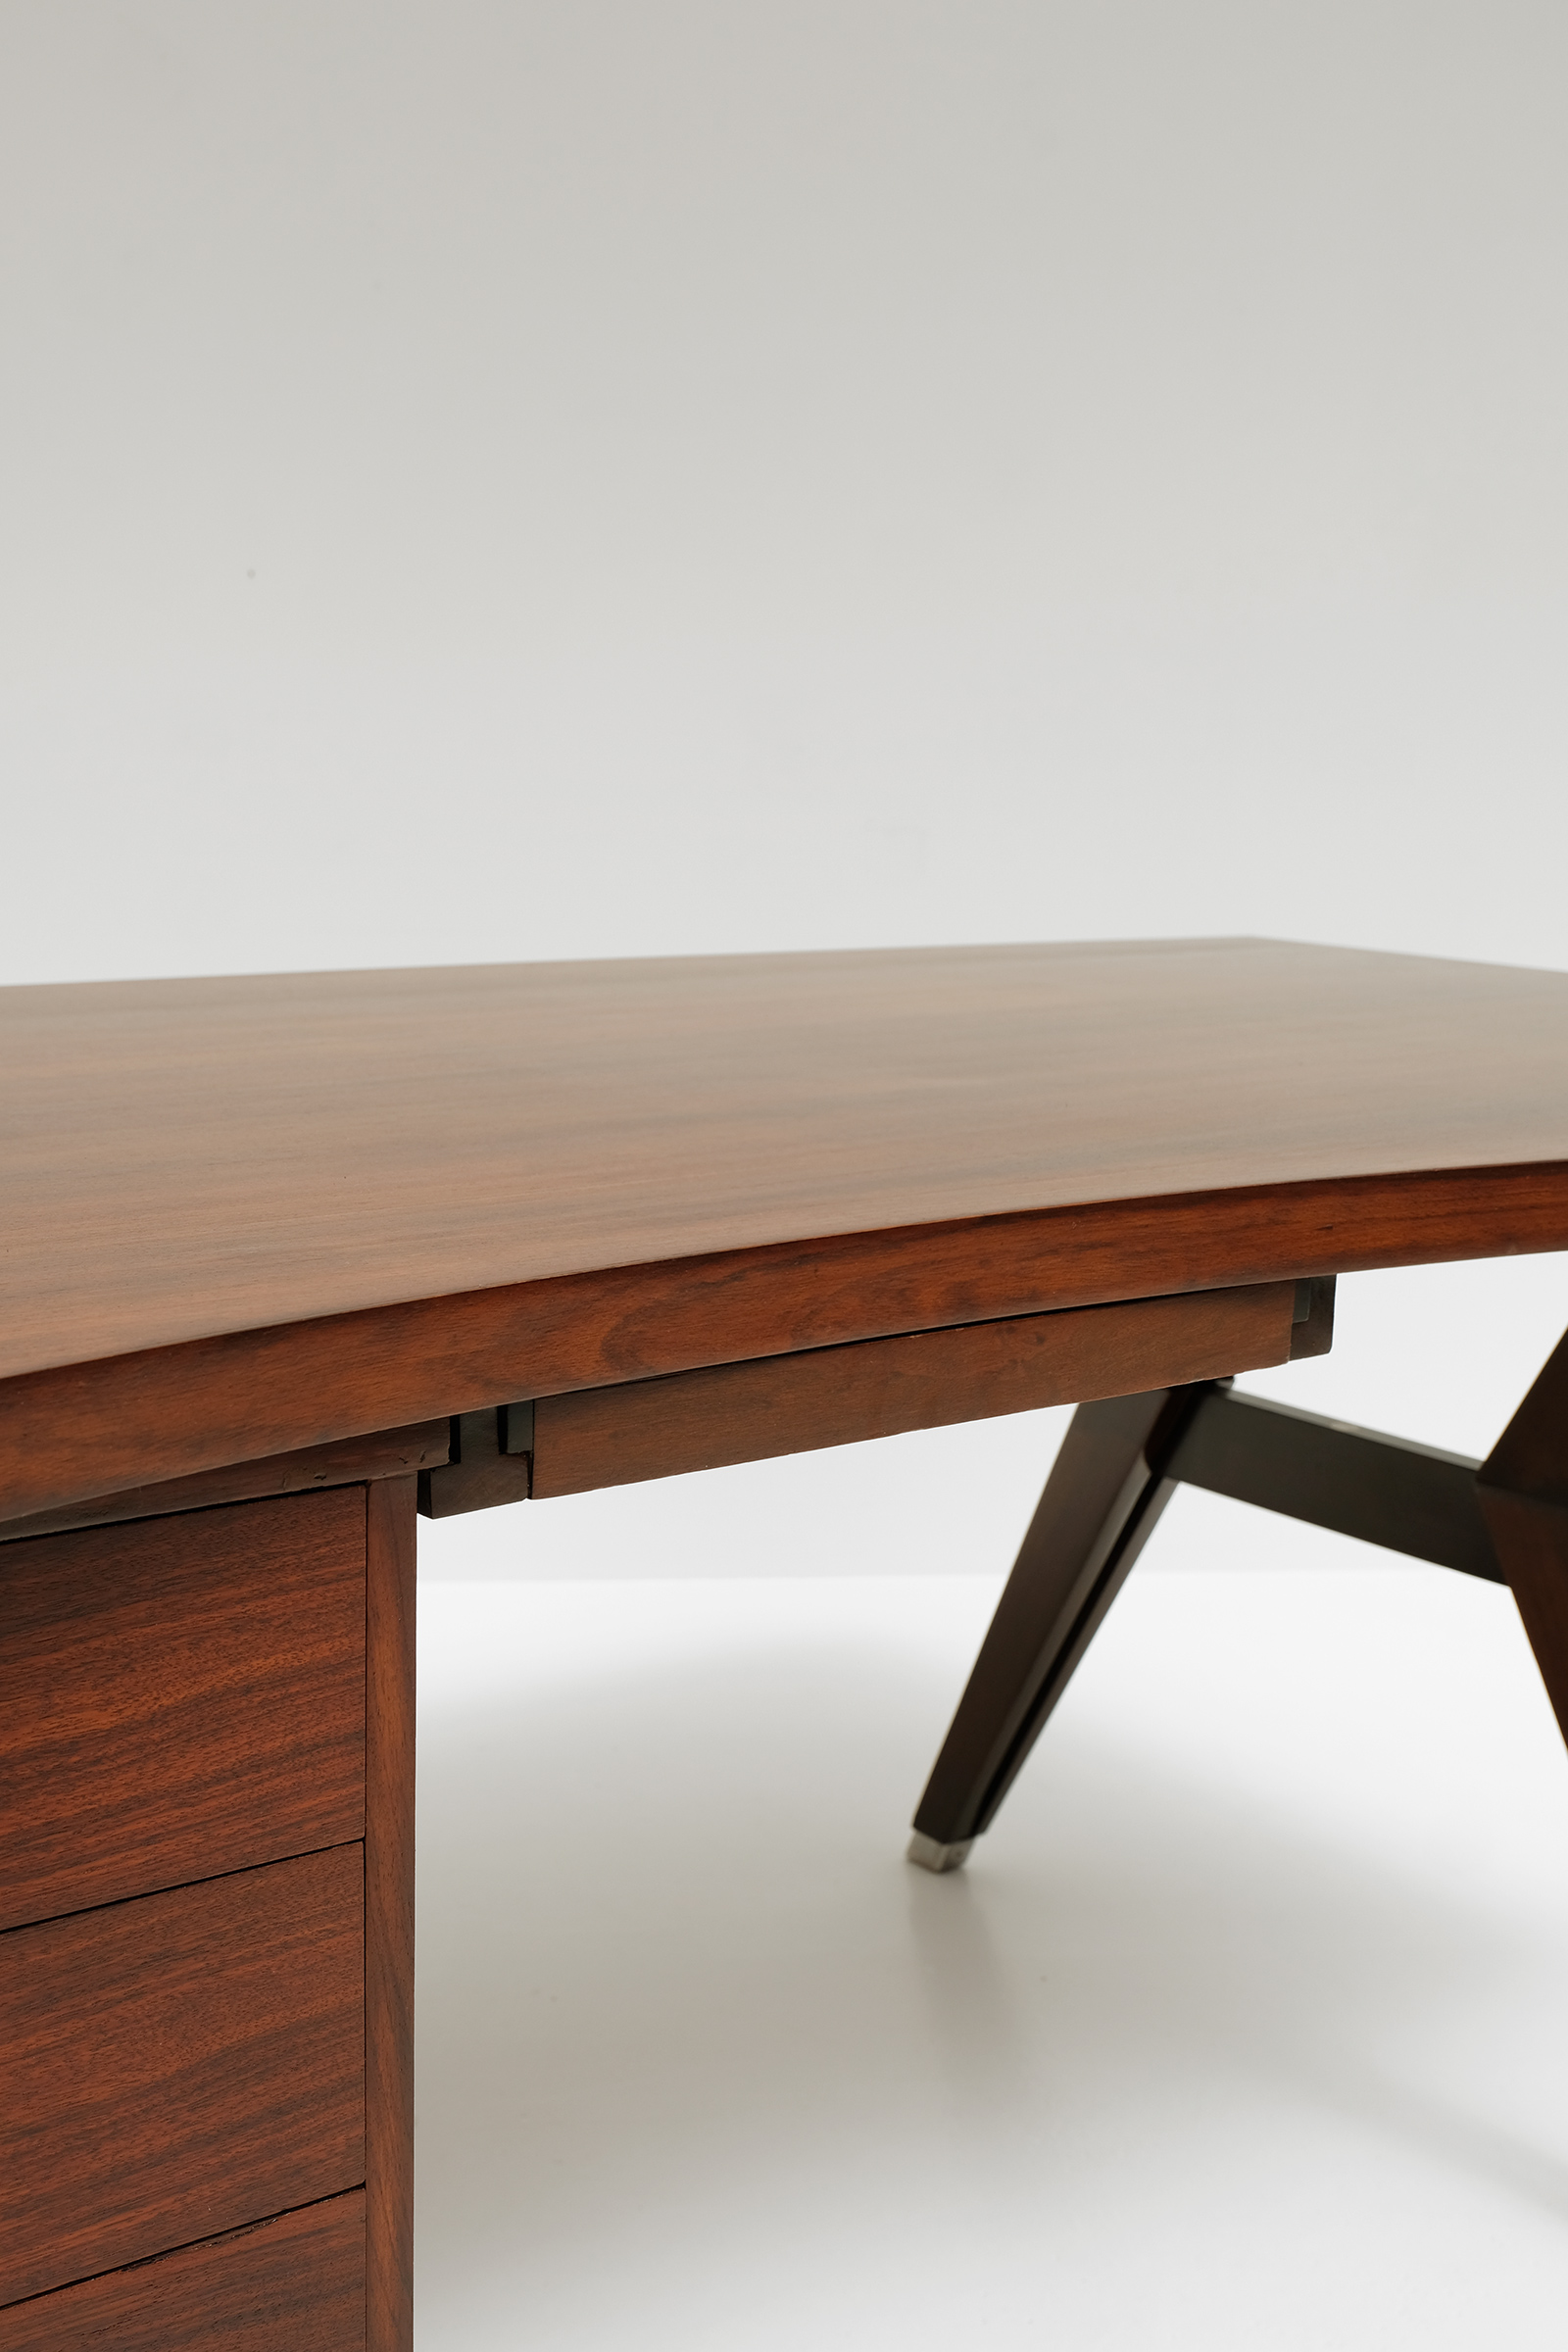 Executive Desk by Ico Parisi for MIM 1958image 5